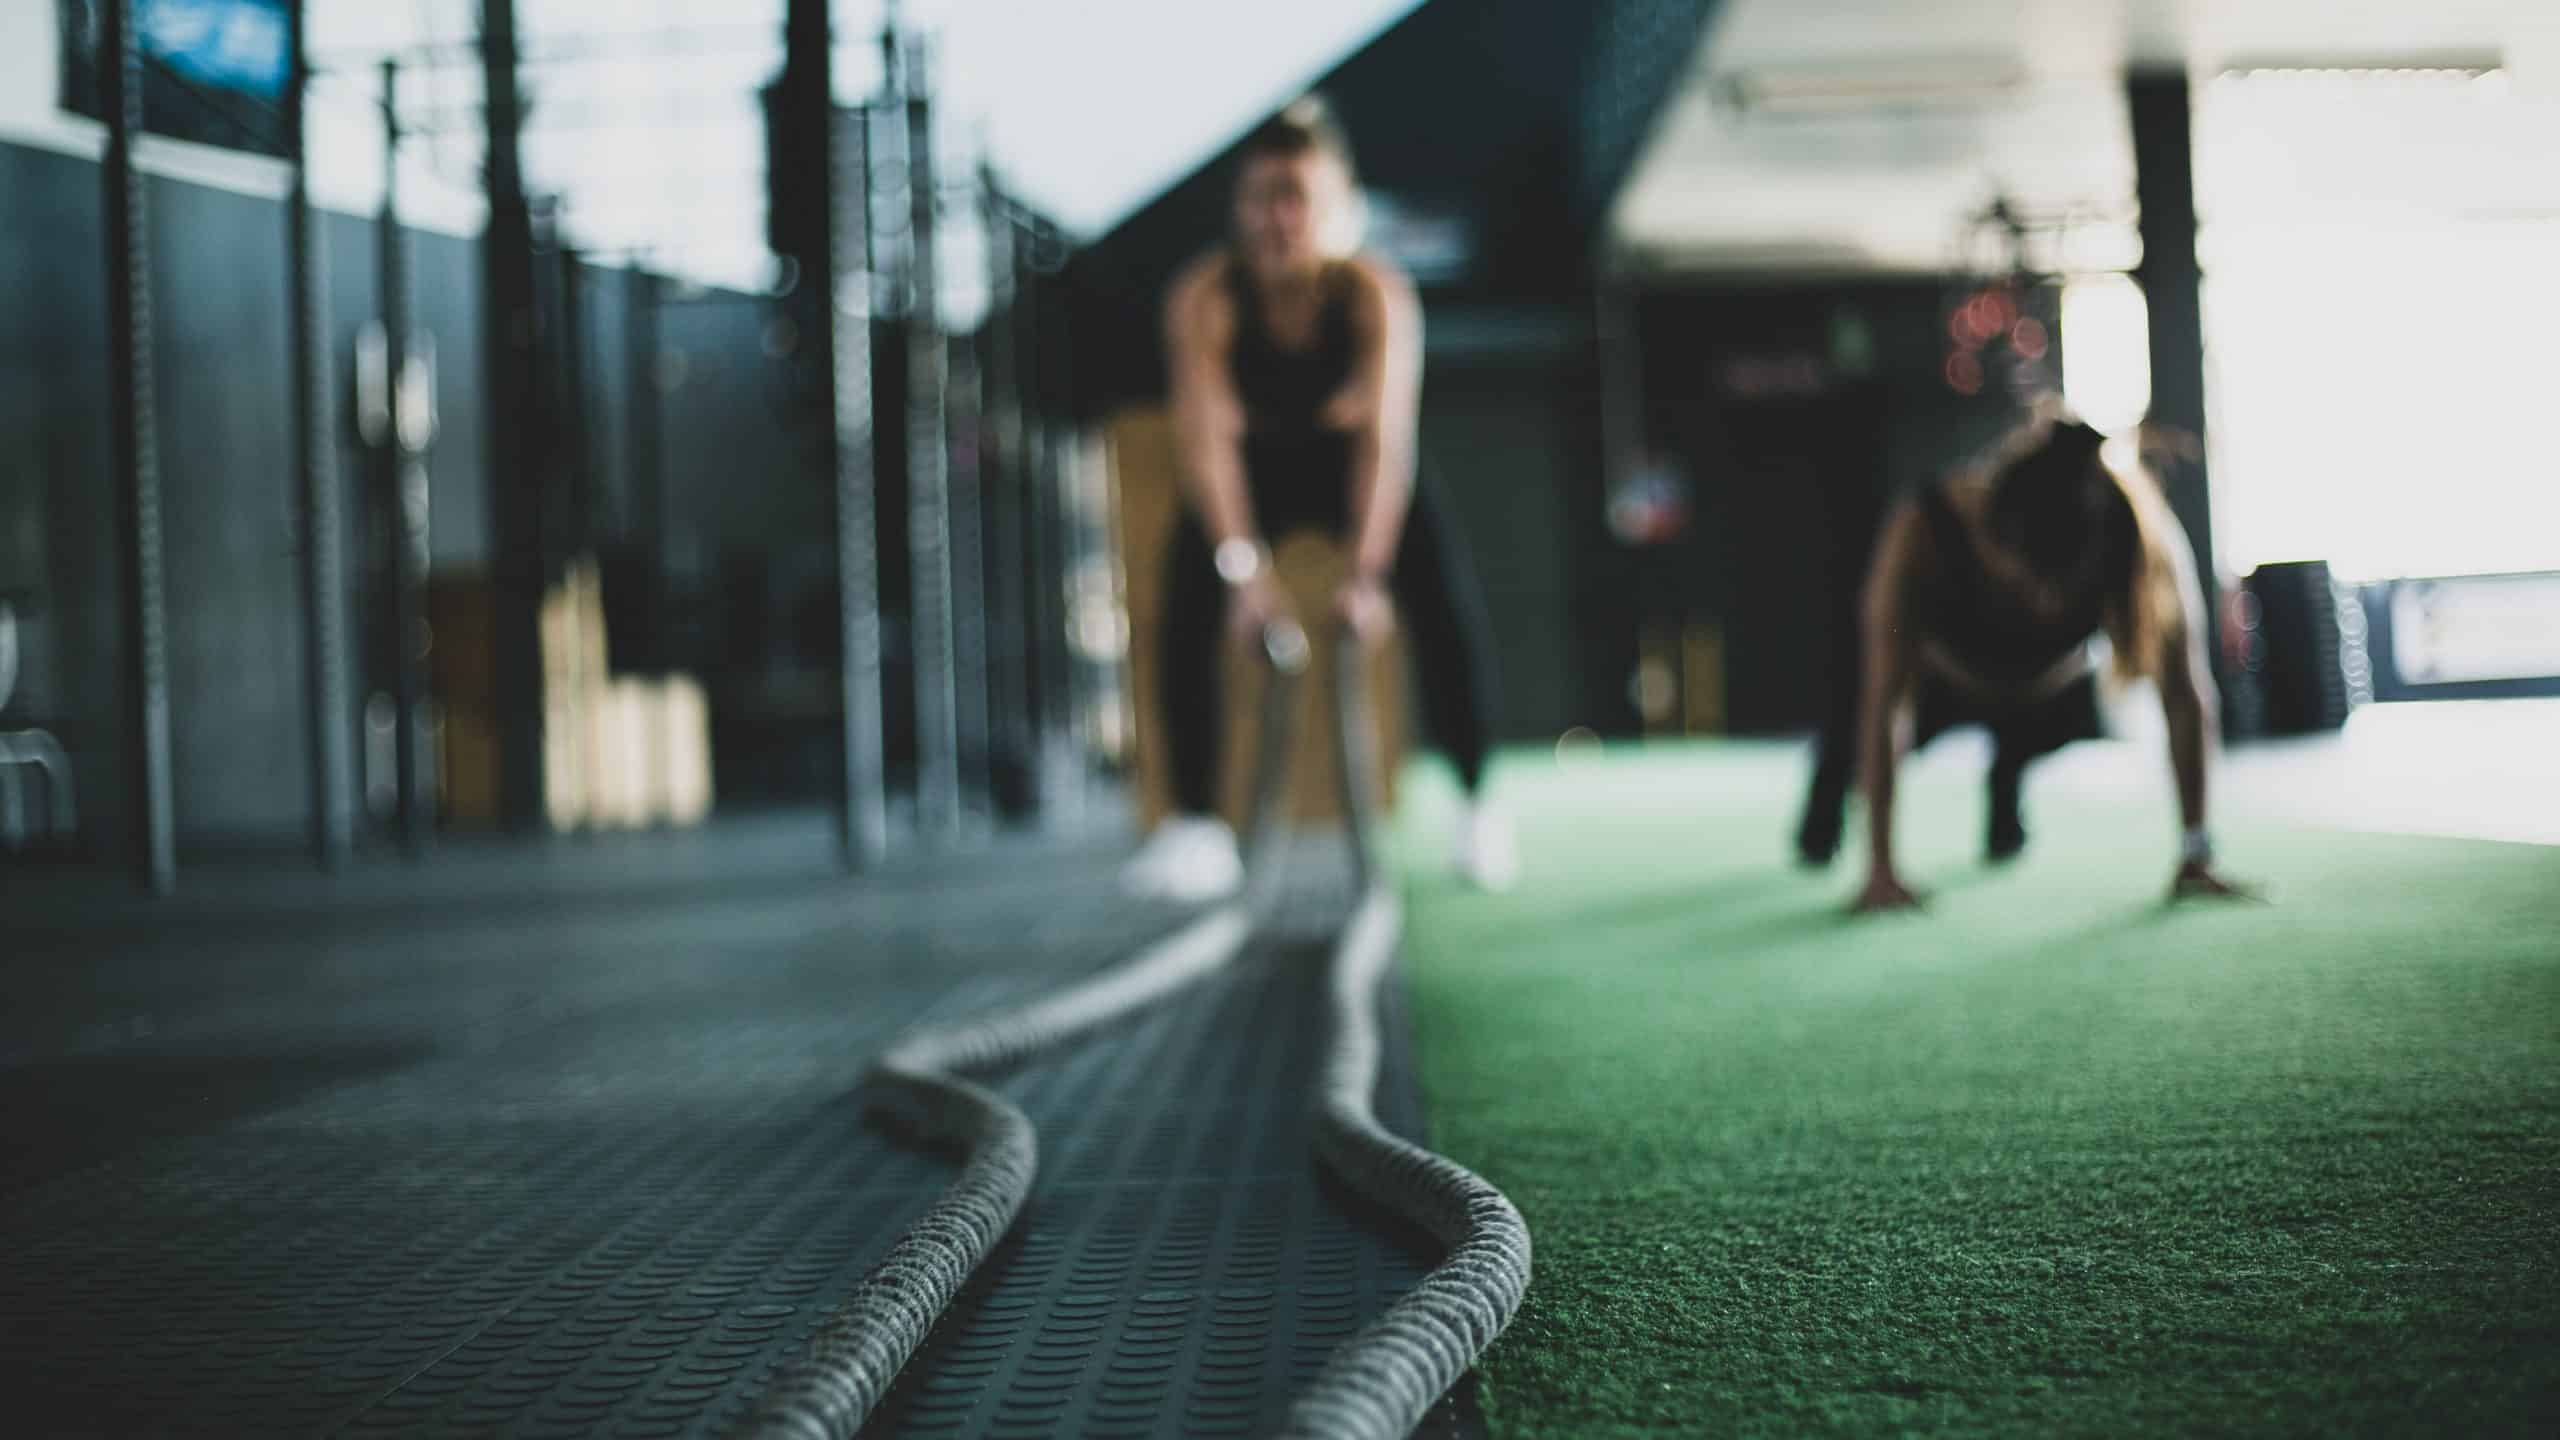 battle rope conditioning exercise